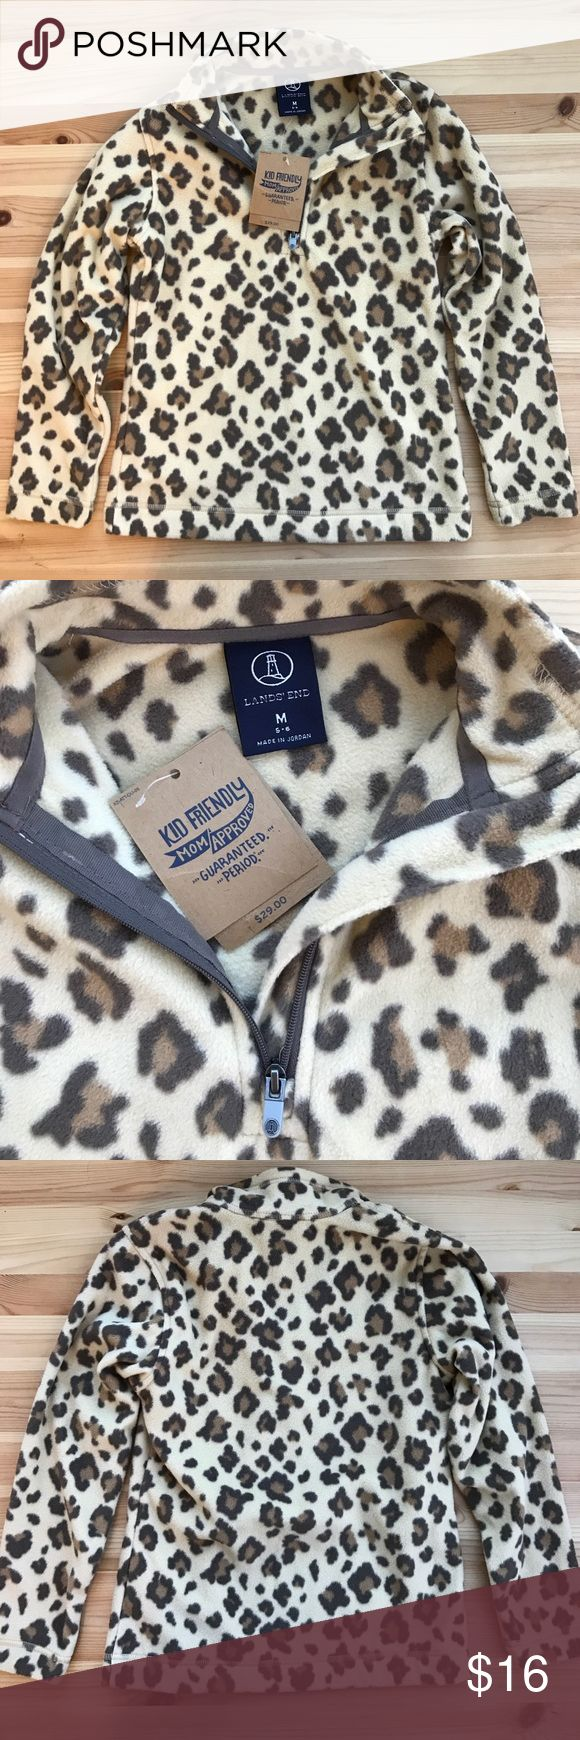 LAND'S END girl's leopard pullover NWT LAND'S END leopard pullover. Girl's size M (5-6). Lands' End Shirts & Tops Sweatshirts & Hoodies